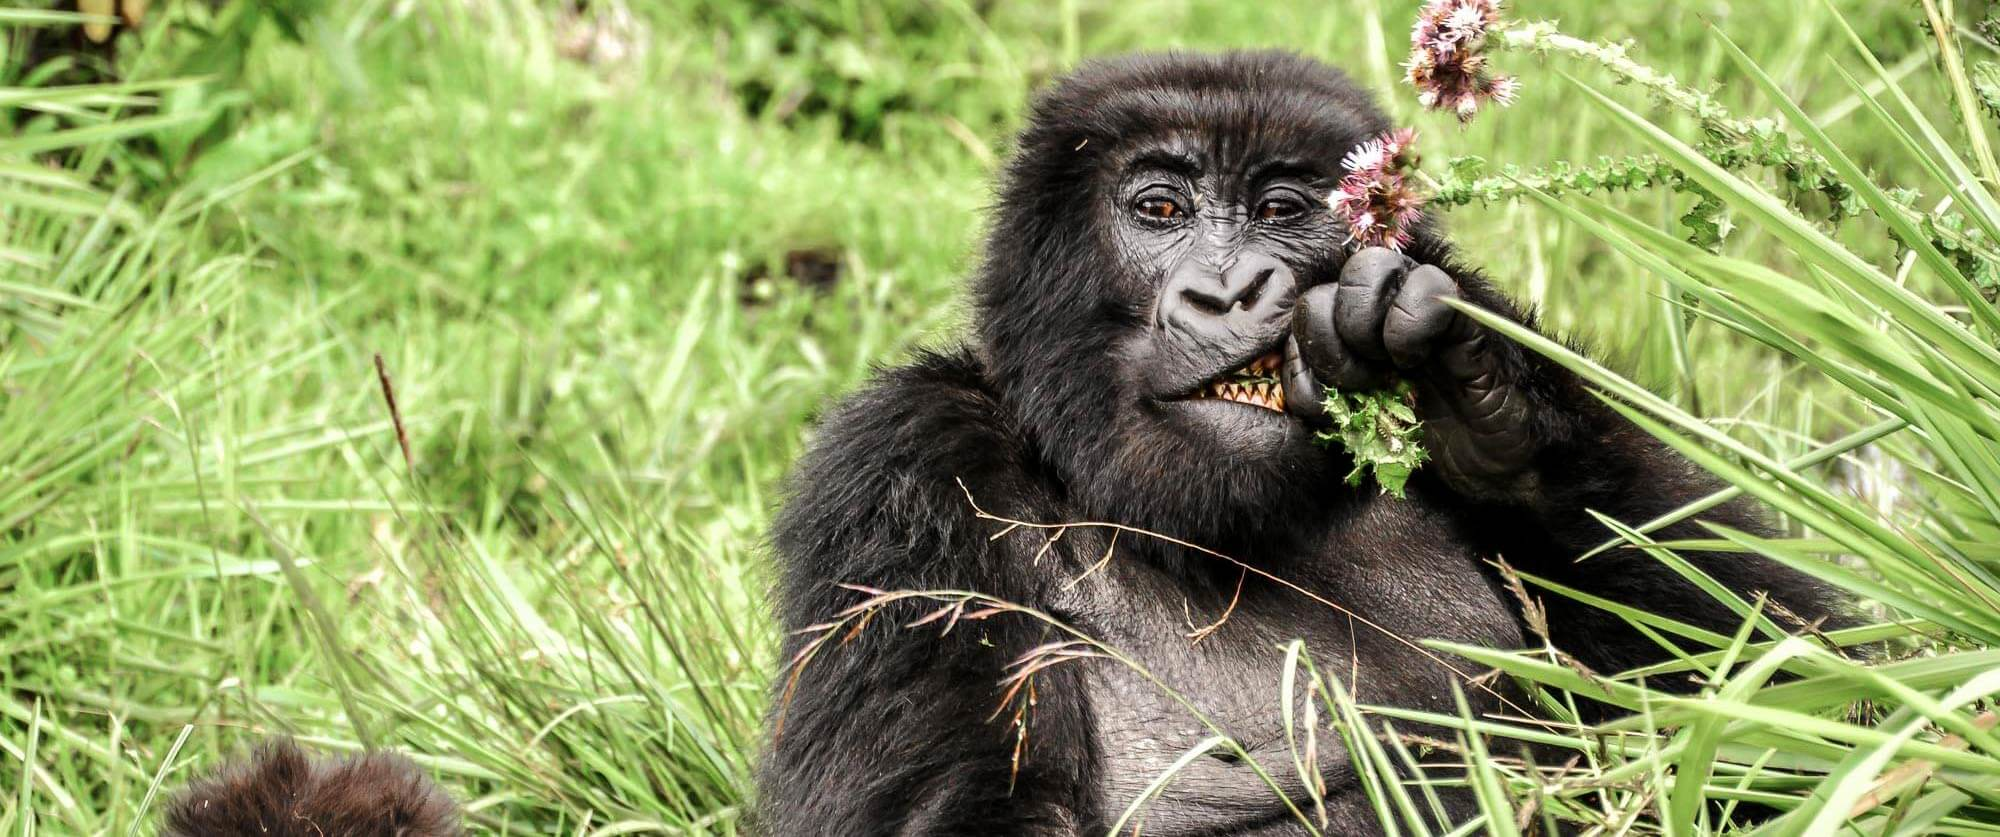 Gorilla eating thistles in Volcanoes National Park - Sabyinyo Silverback Lodge - Uganda and Rwanda Gorilla Trekking Tour